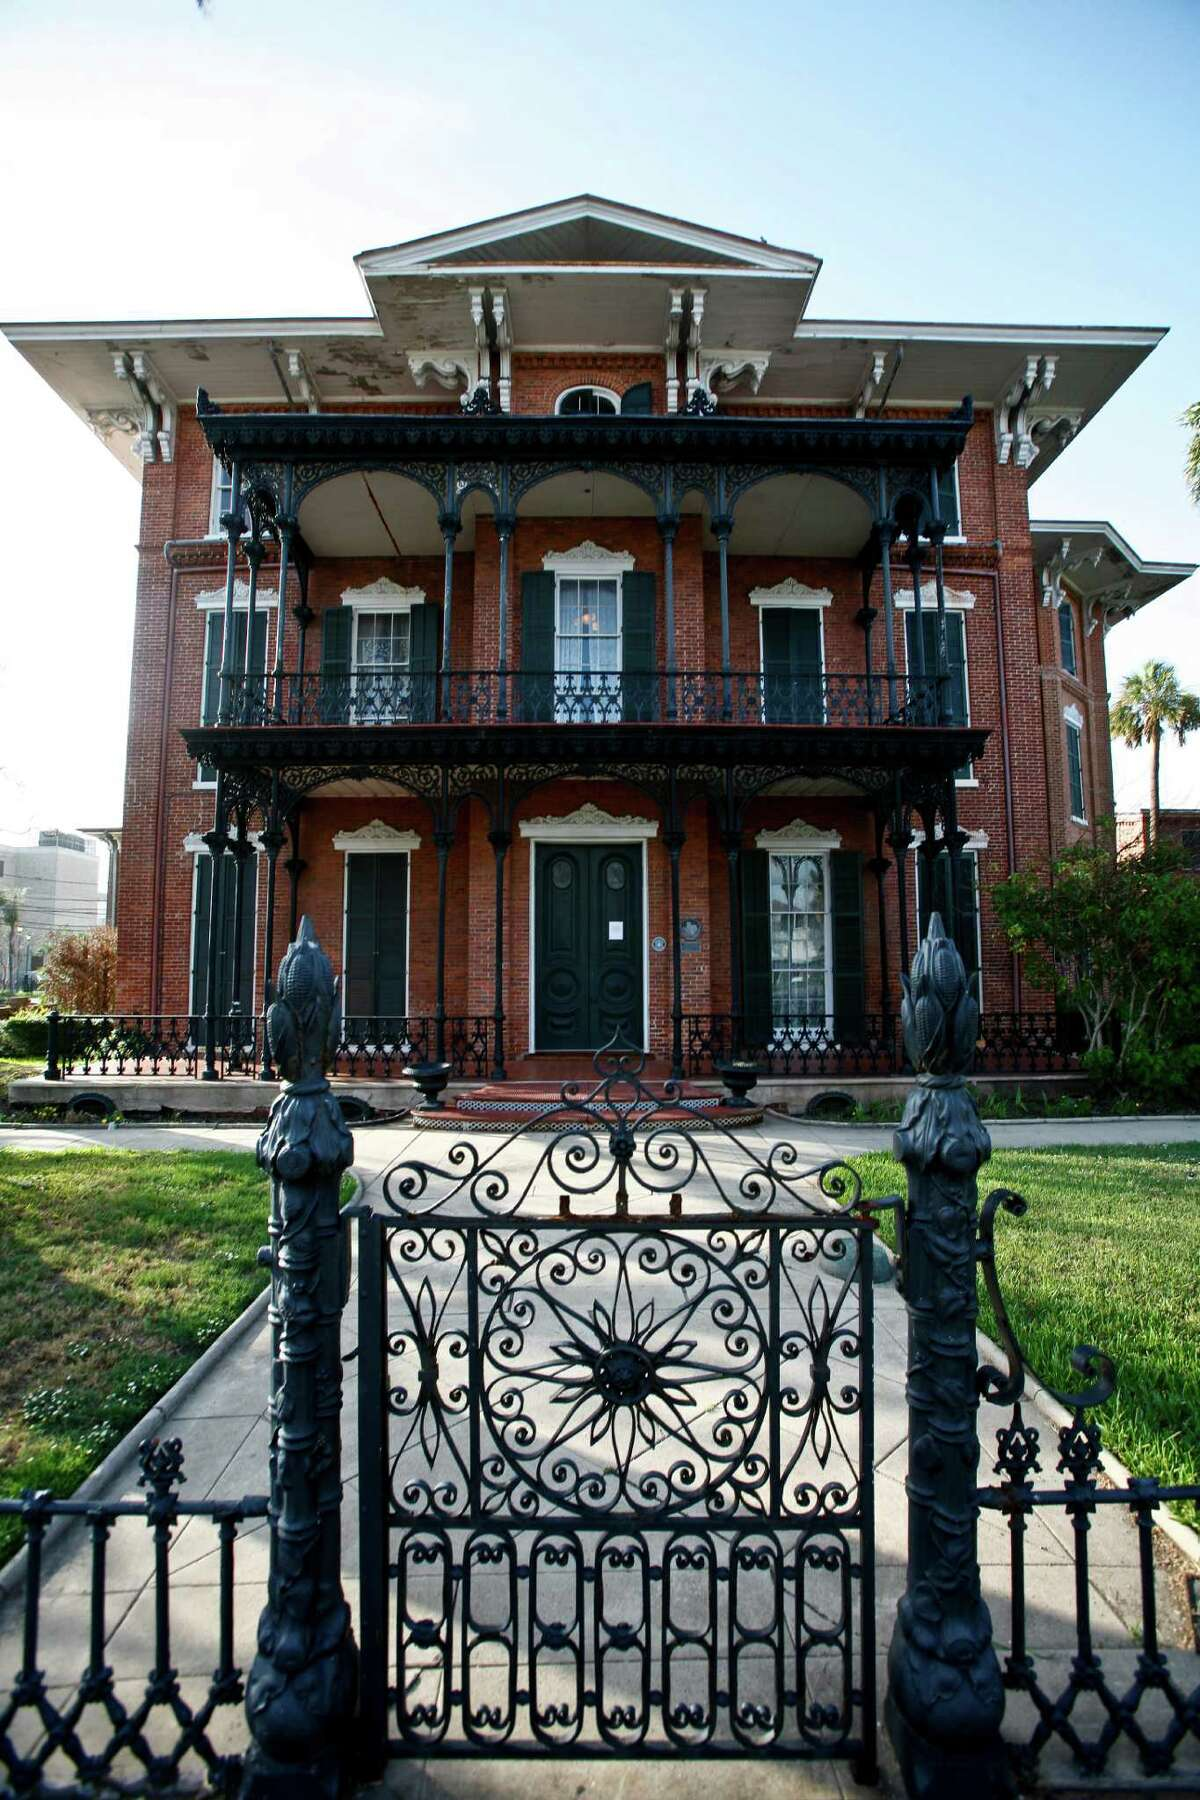 Ashton Villa Located on 2328 Broadway and built in 1859, the museum was once the home of railroad and banking tycoon J.M. Brown.It survived the Hurricane of 1900 and has had reports of apparitions.